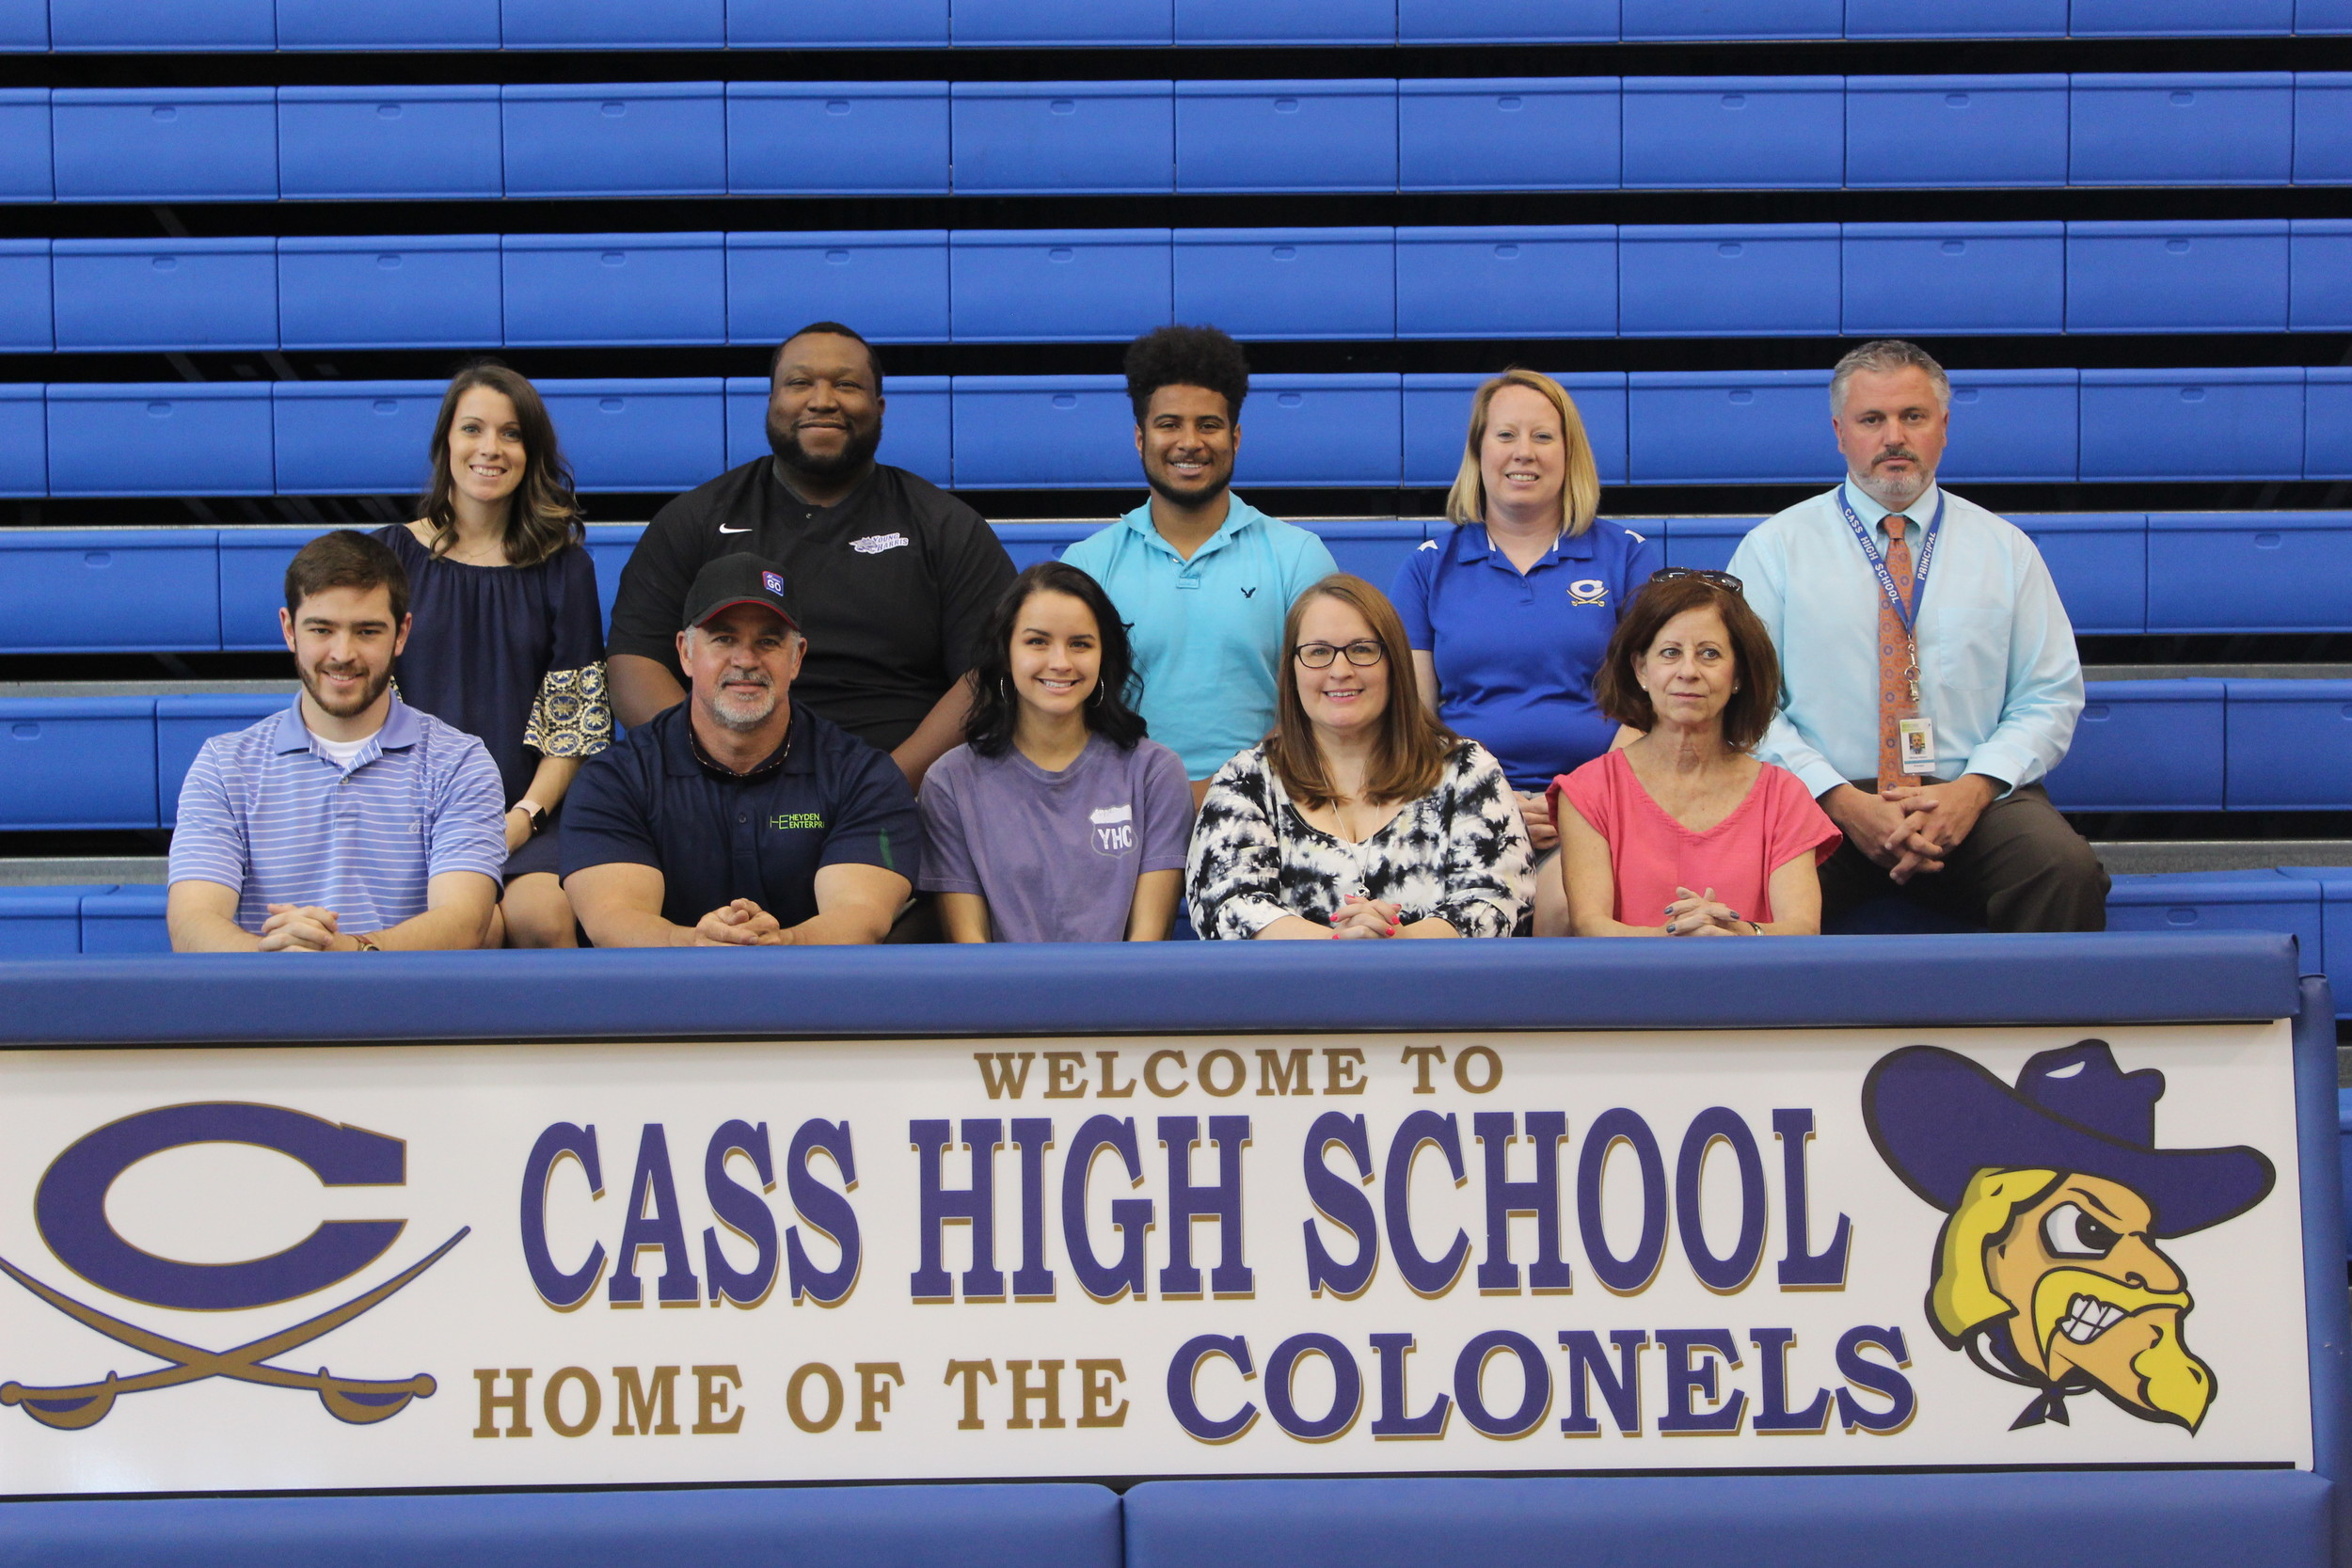 Cass senior Siarra Swanson, center, signed with the Young Harris competitive cheer squad Wednesday in the high school's gym. On hand for the signing were, from left, front row, Dalton Swanson, brother; Justin Swanson, father; Tracie Swanson, mother; Linda Swanson, grandmother; back row, Nicole Woodard, Cass cheer coach; Jason Williams, Young Harris head cheer coach; Terry Kayea, Young Harris assistant cheer coach; Brooke McDurmon, Cass cheer coach; and Mike Nelson, Cass High Principal.